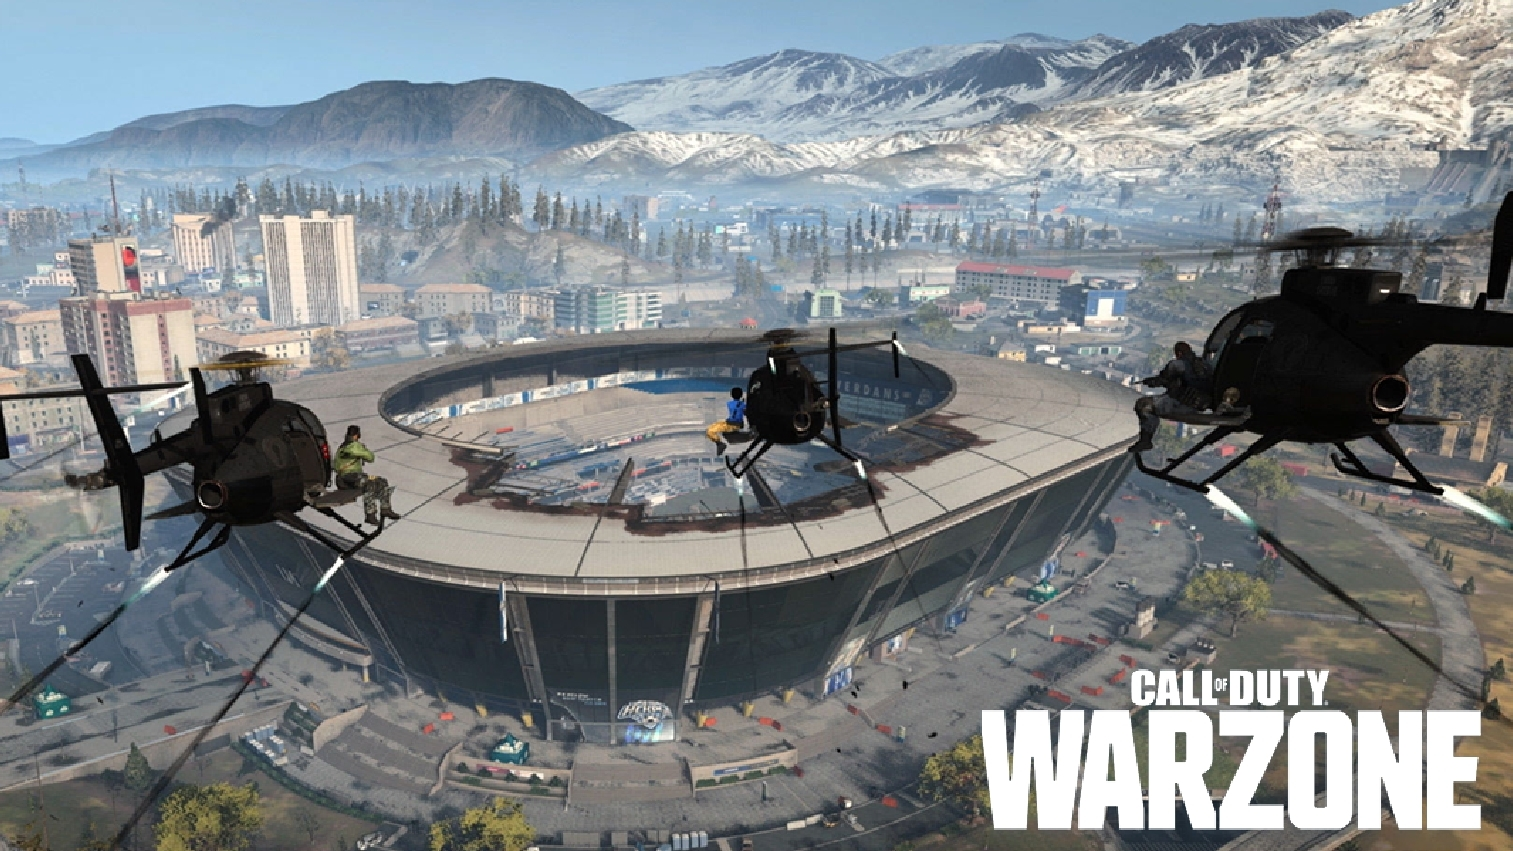 warzone Stadium with helicopters in season 5